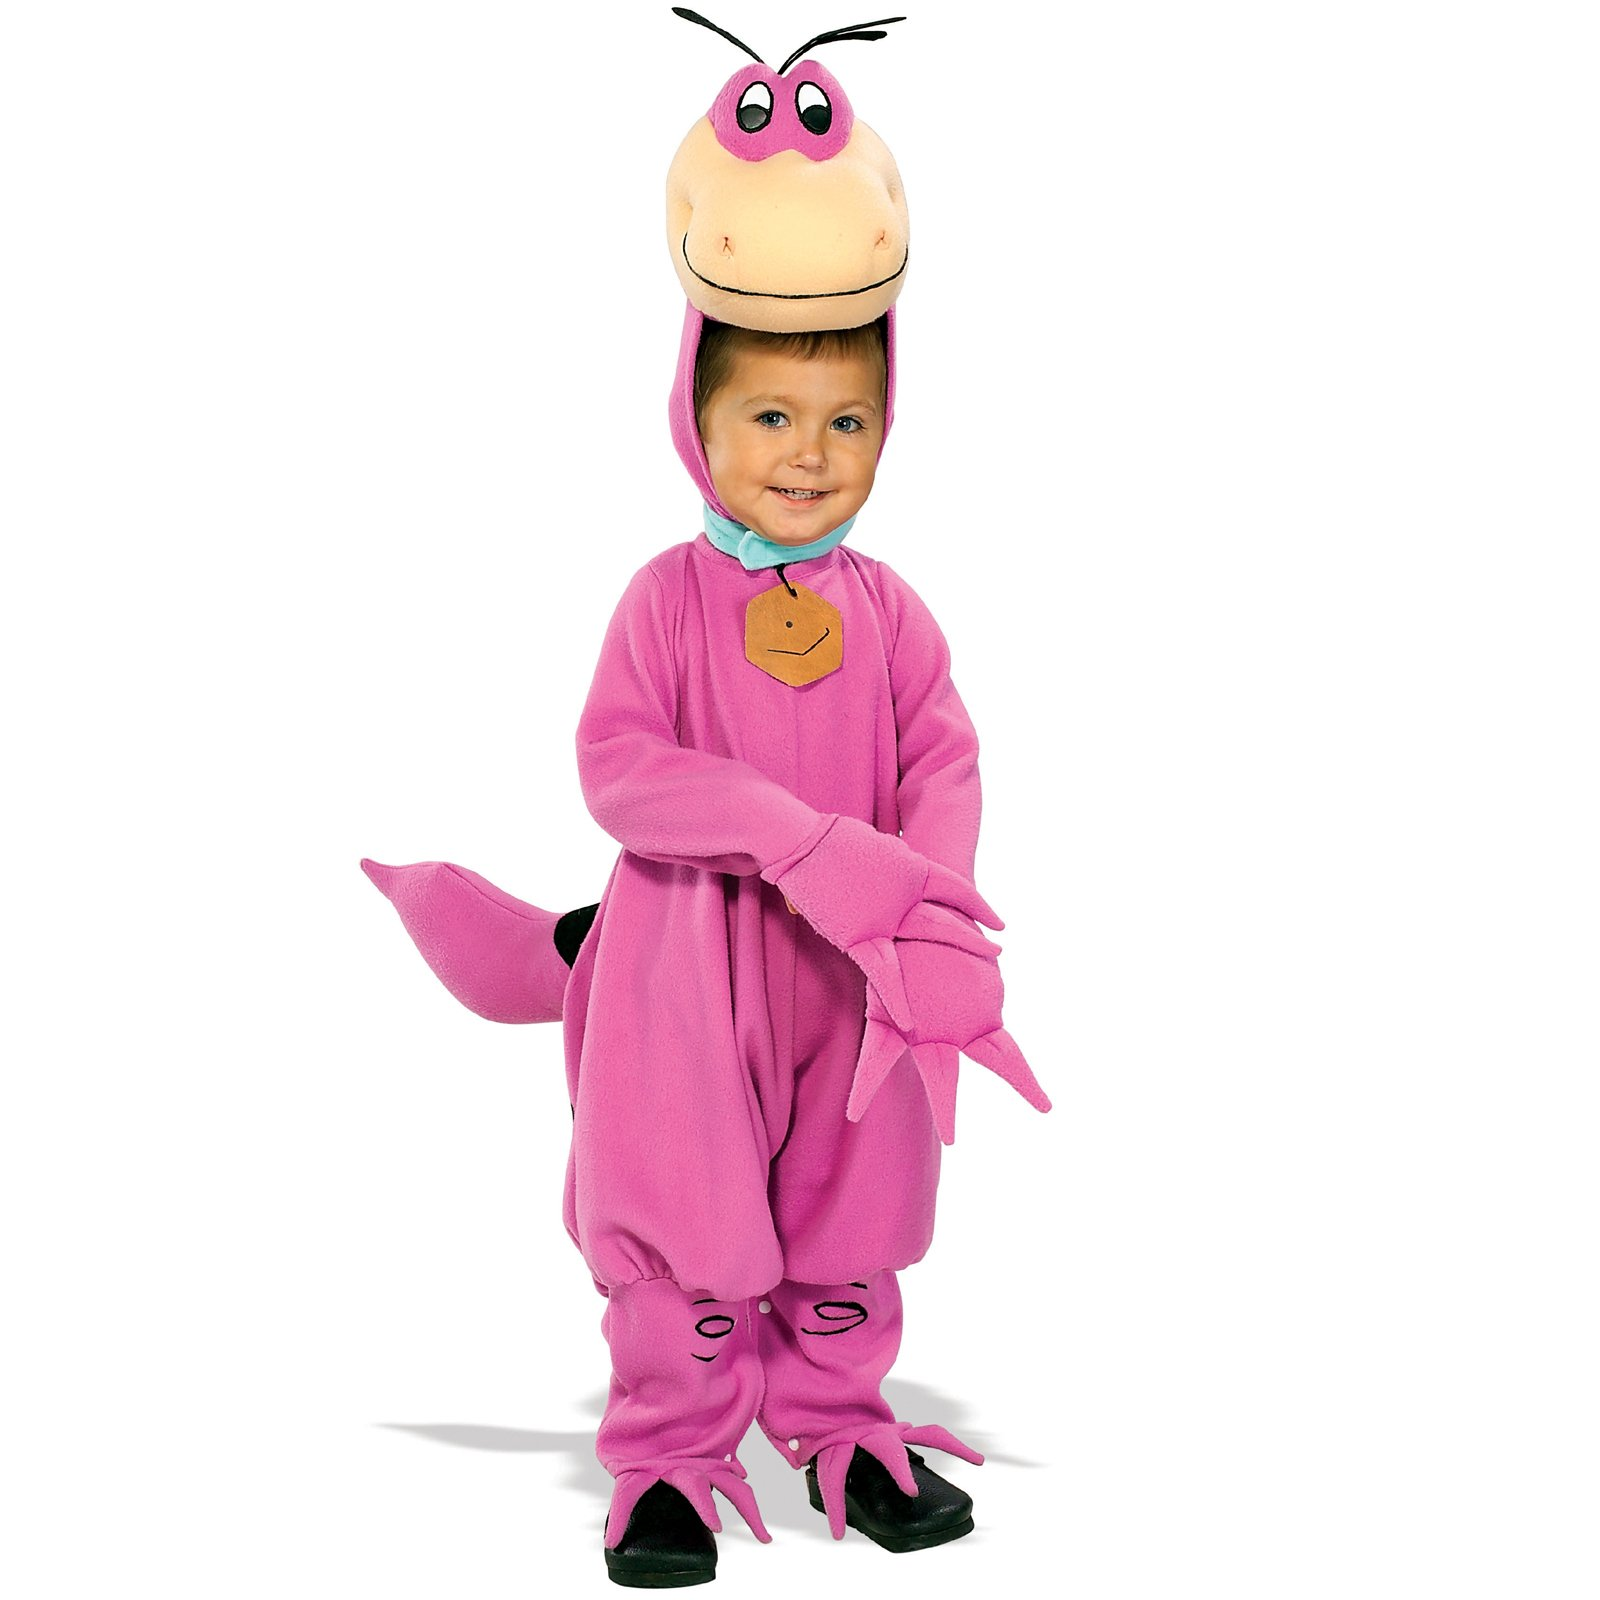 The Flintstones Dino Toddler / Child Costume